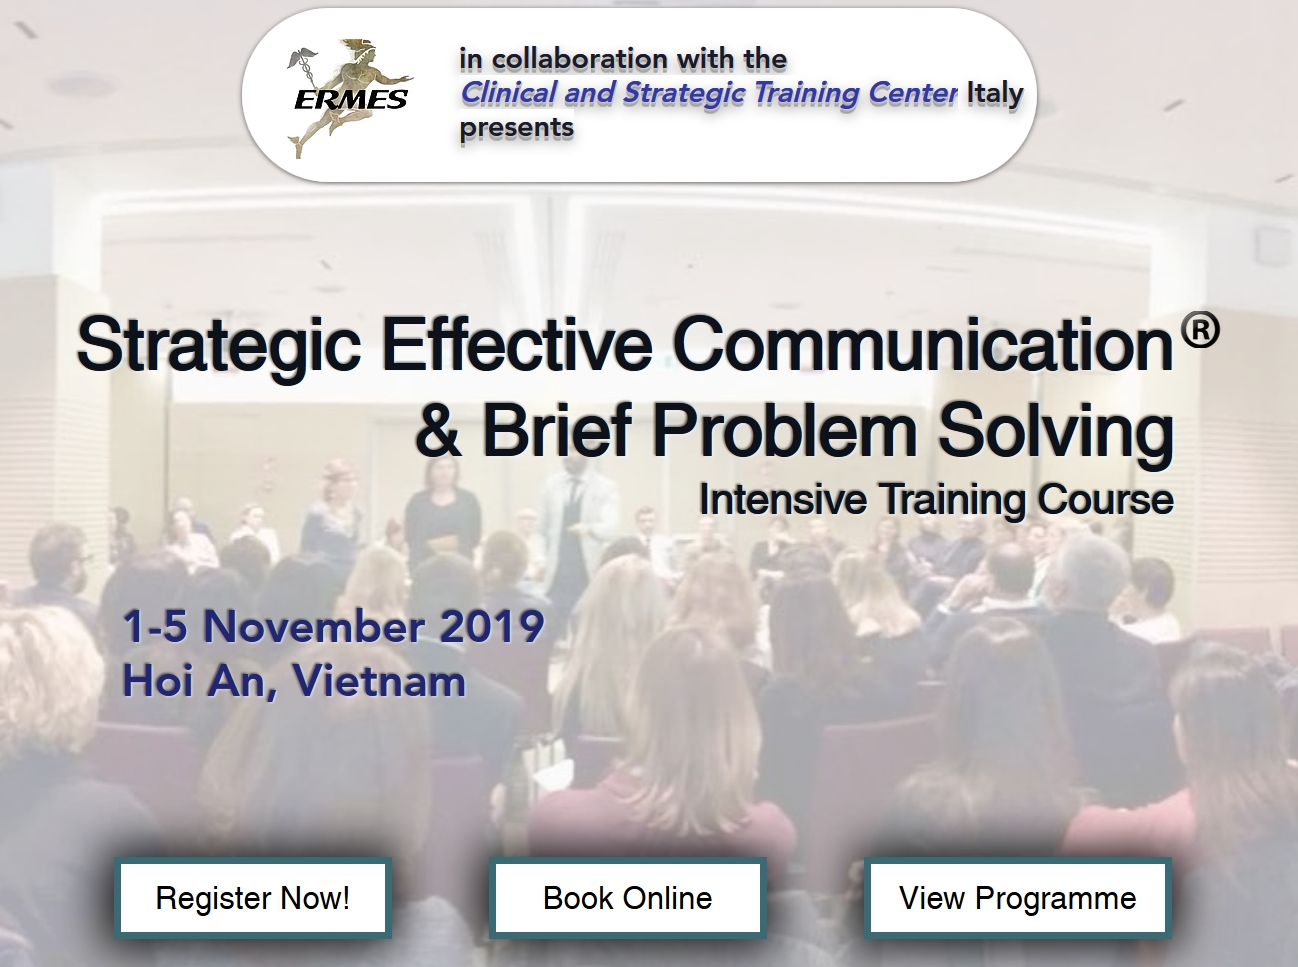 Strategic Effective Communication and Brief Problem Solving Training Course